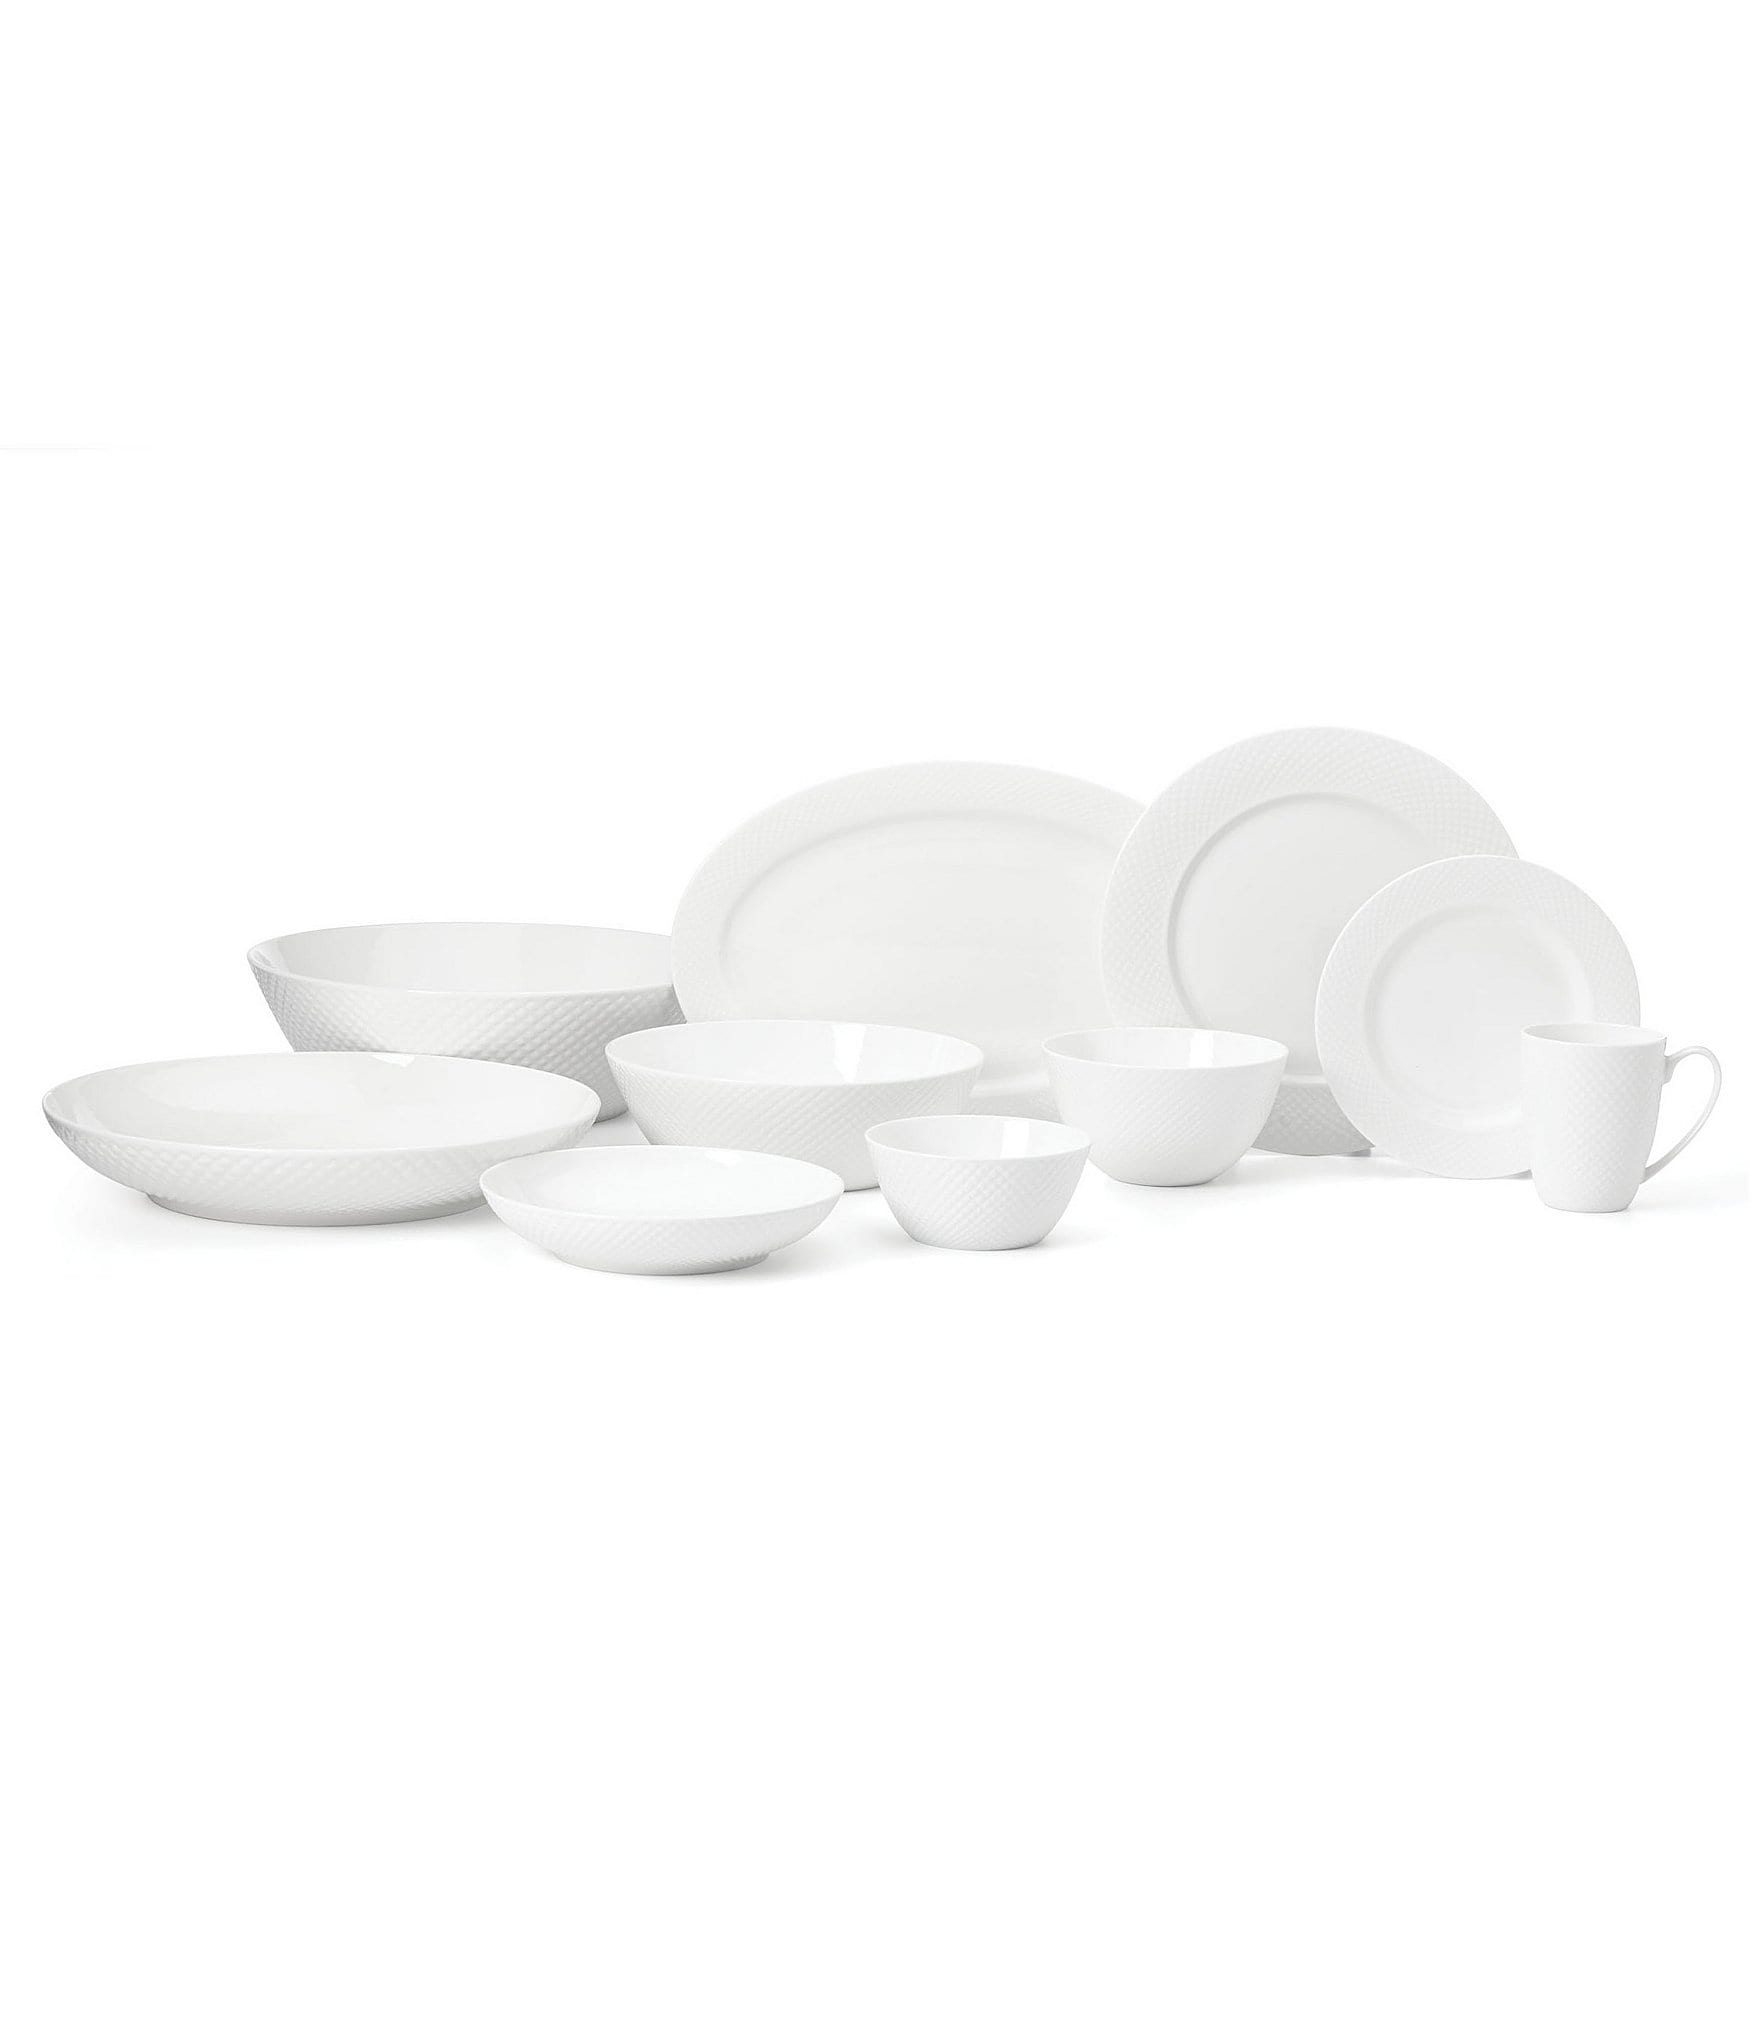 sc 1 st  Dillardu0027s & Gorham Casual Everyday Dinnerware: Plates  Dishes u0026 Sets | Dillards